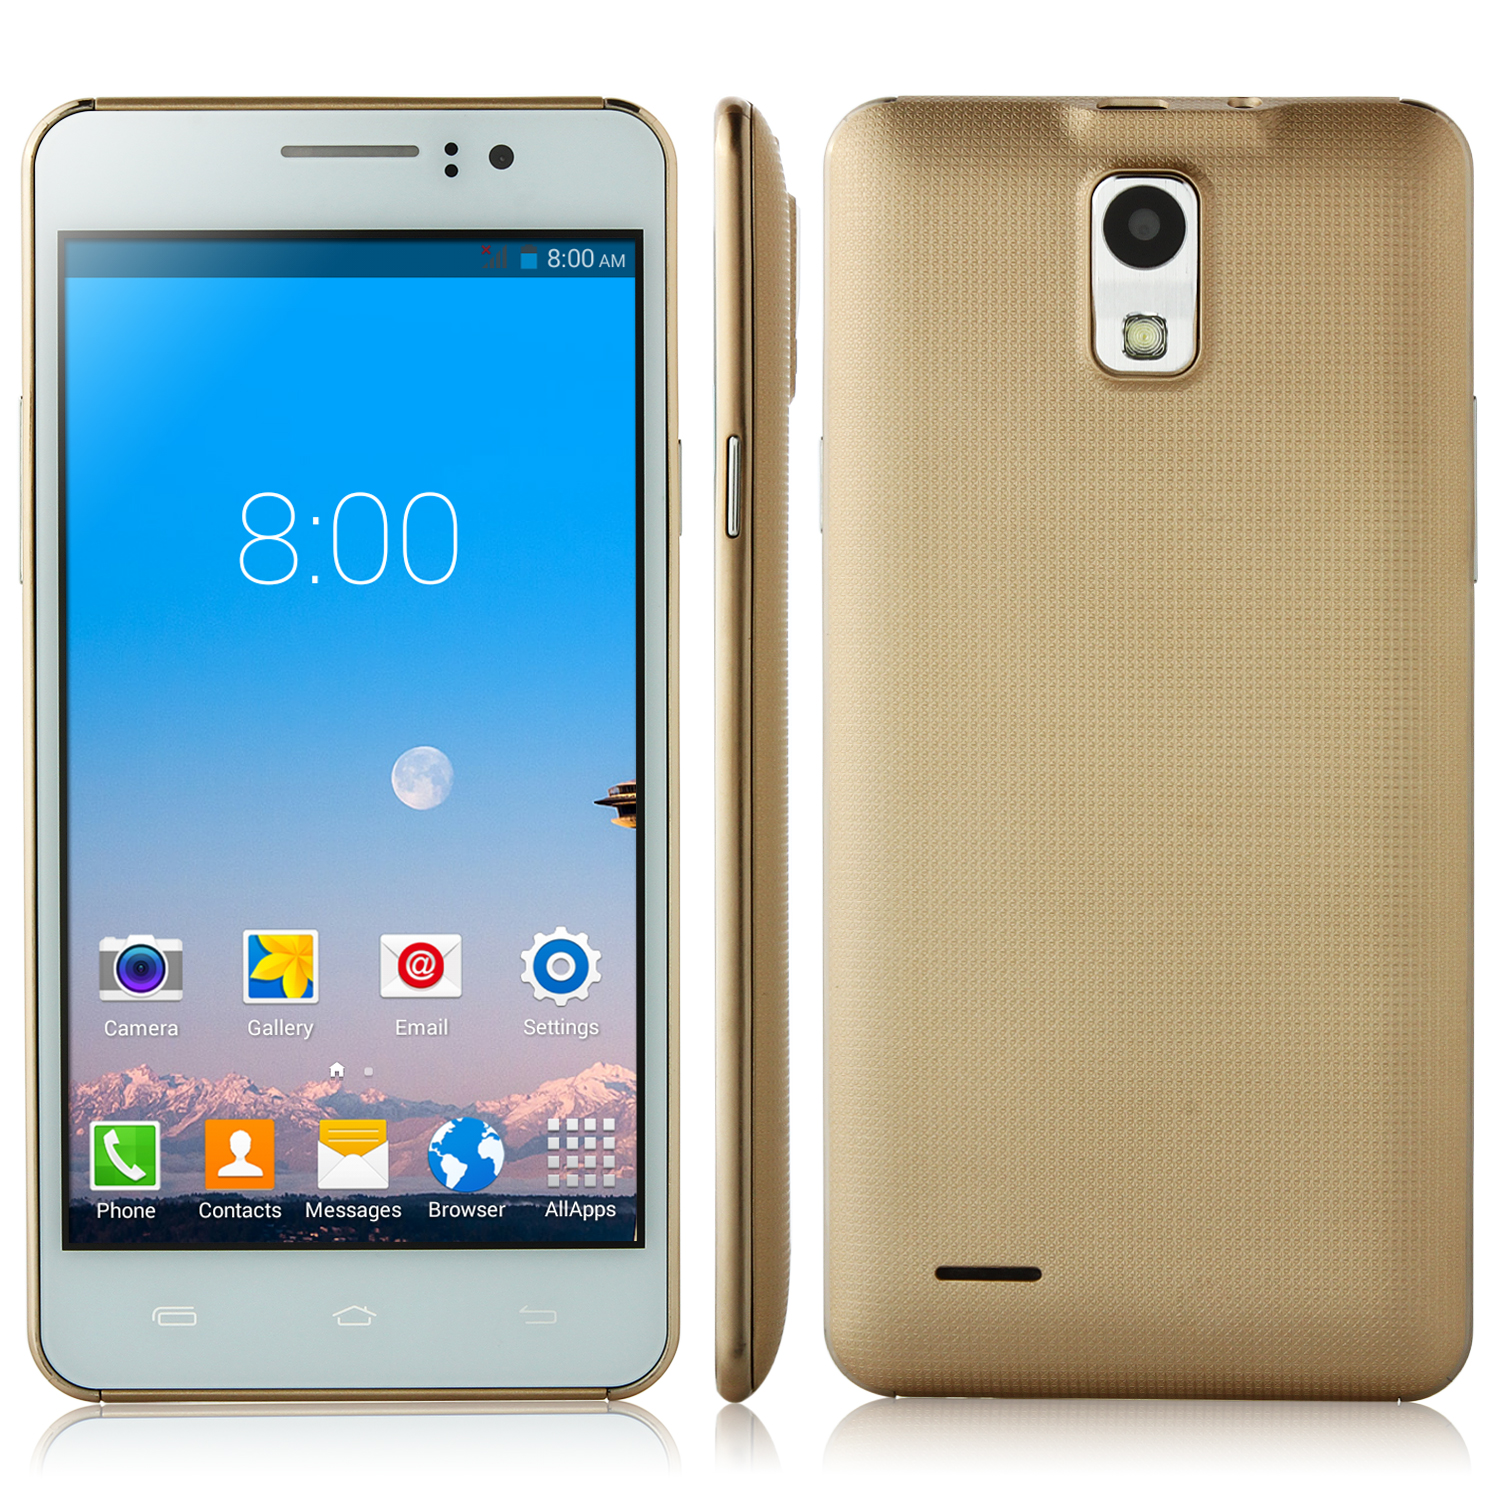 P7 Smartphone 5.0 inch QHD Screen MTK6572W Android 4.4 Smart Wake Gold